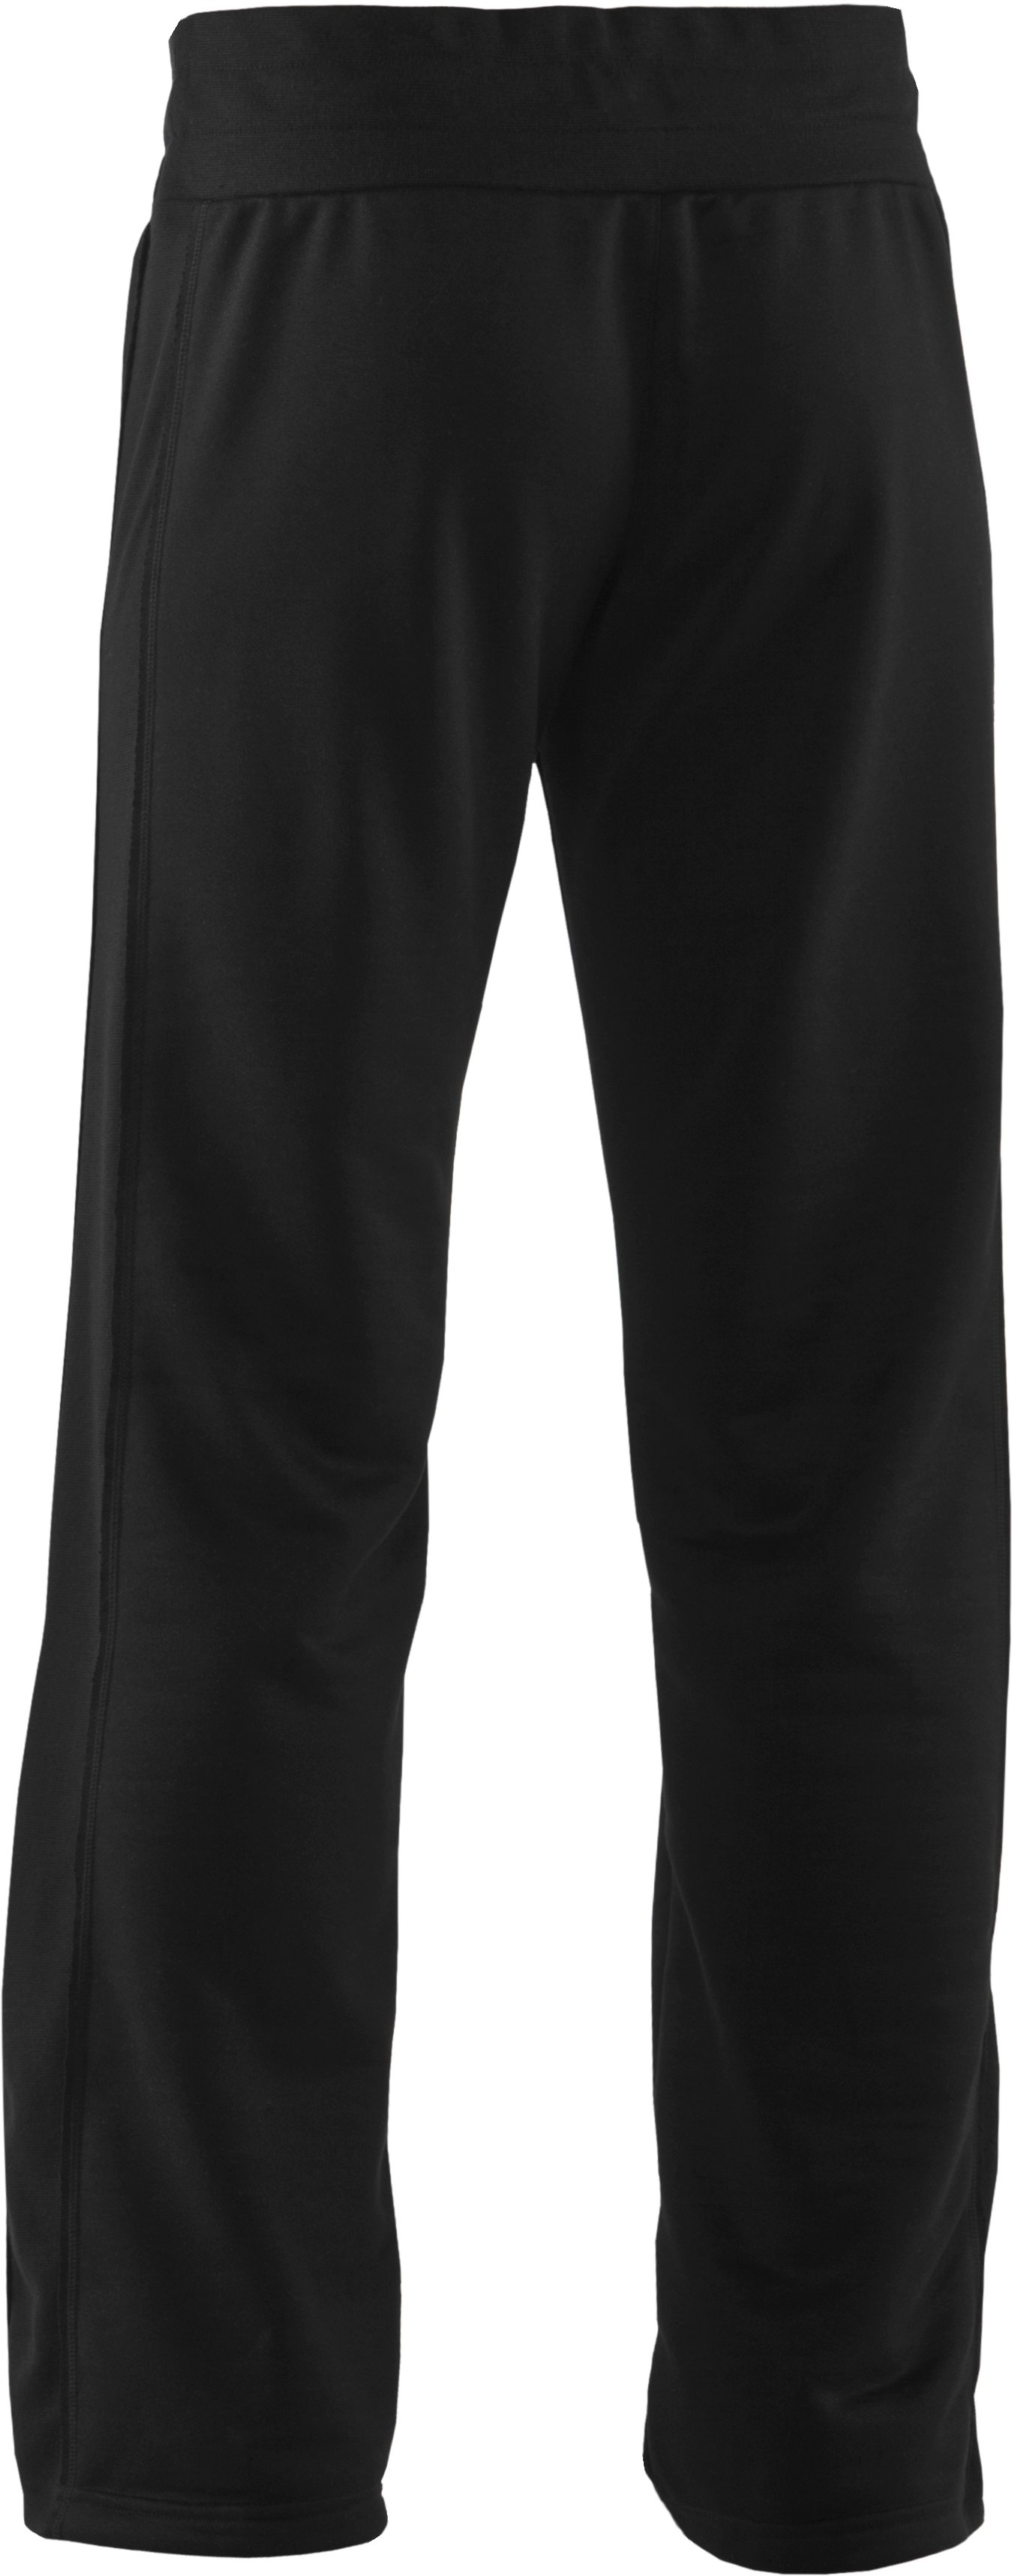 Women's Finesse Pant, Black , undefined